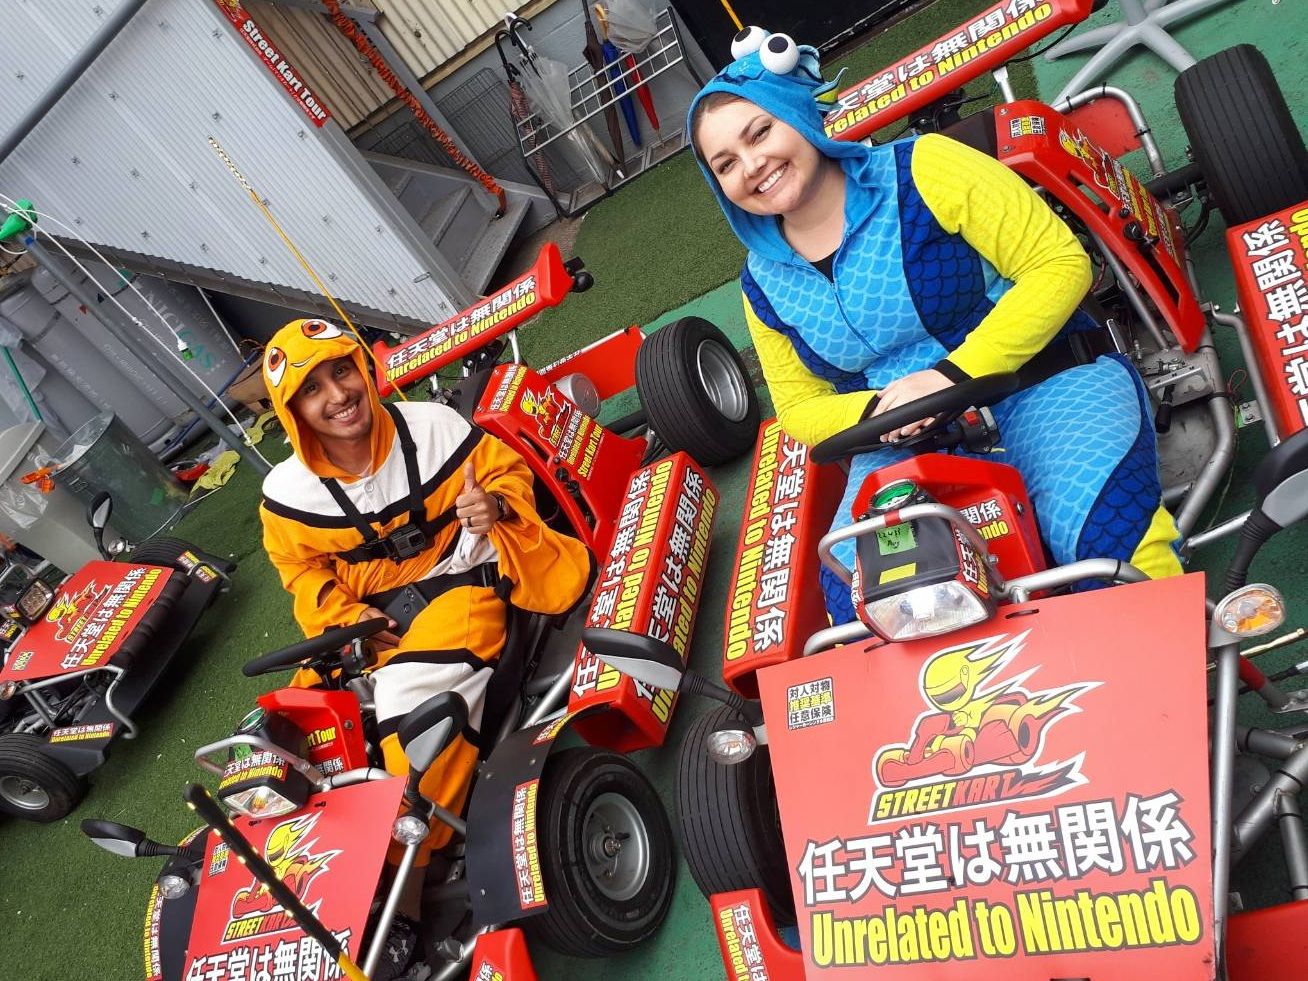 Tour Tokyo with go-cart tour company, Street Kart Tokyo Bay, for an unforgettable experience!